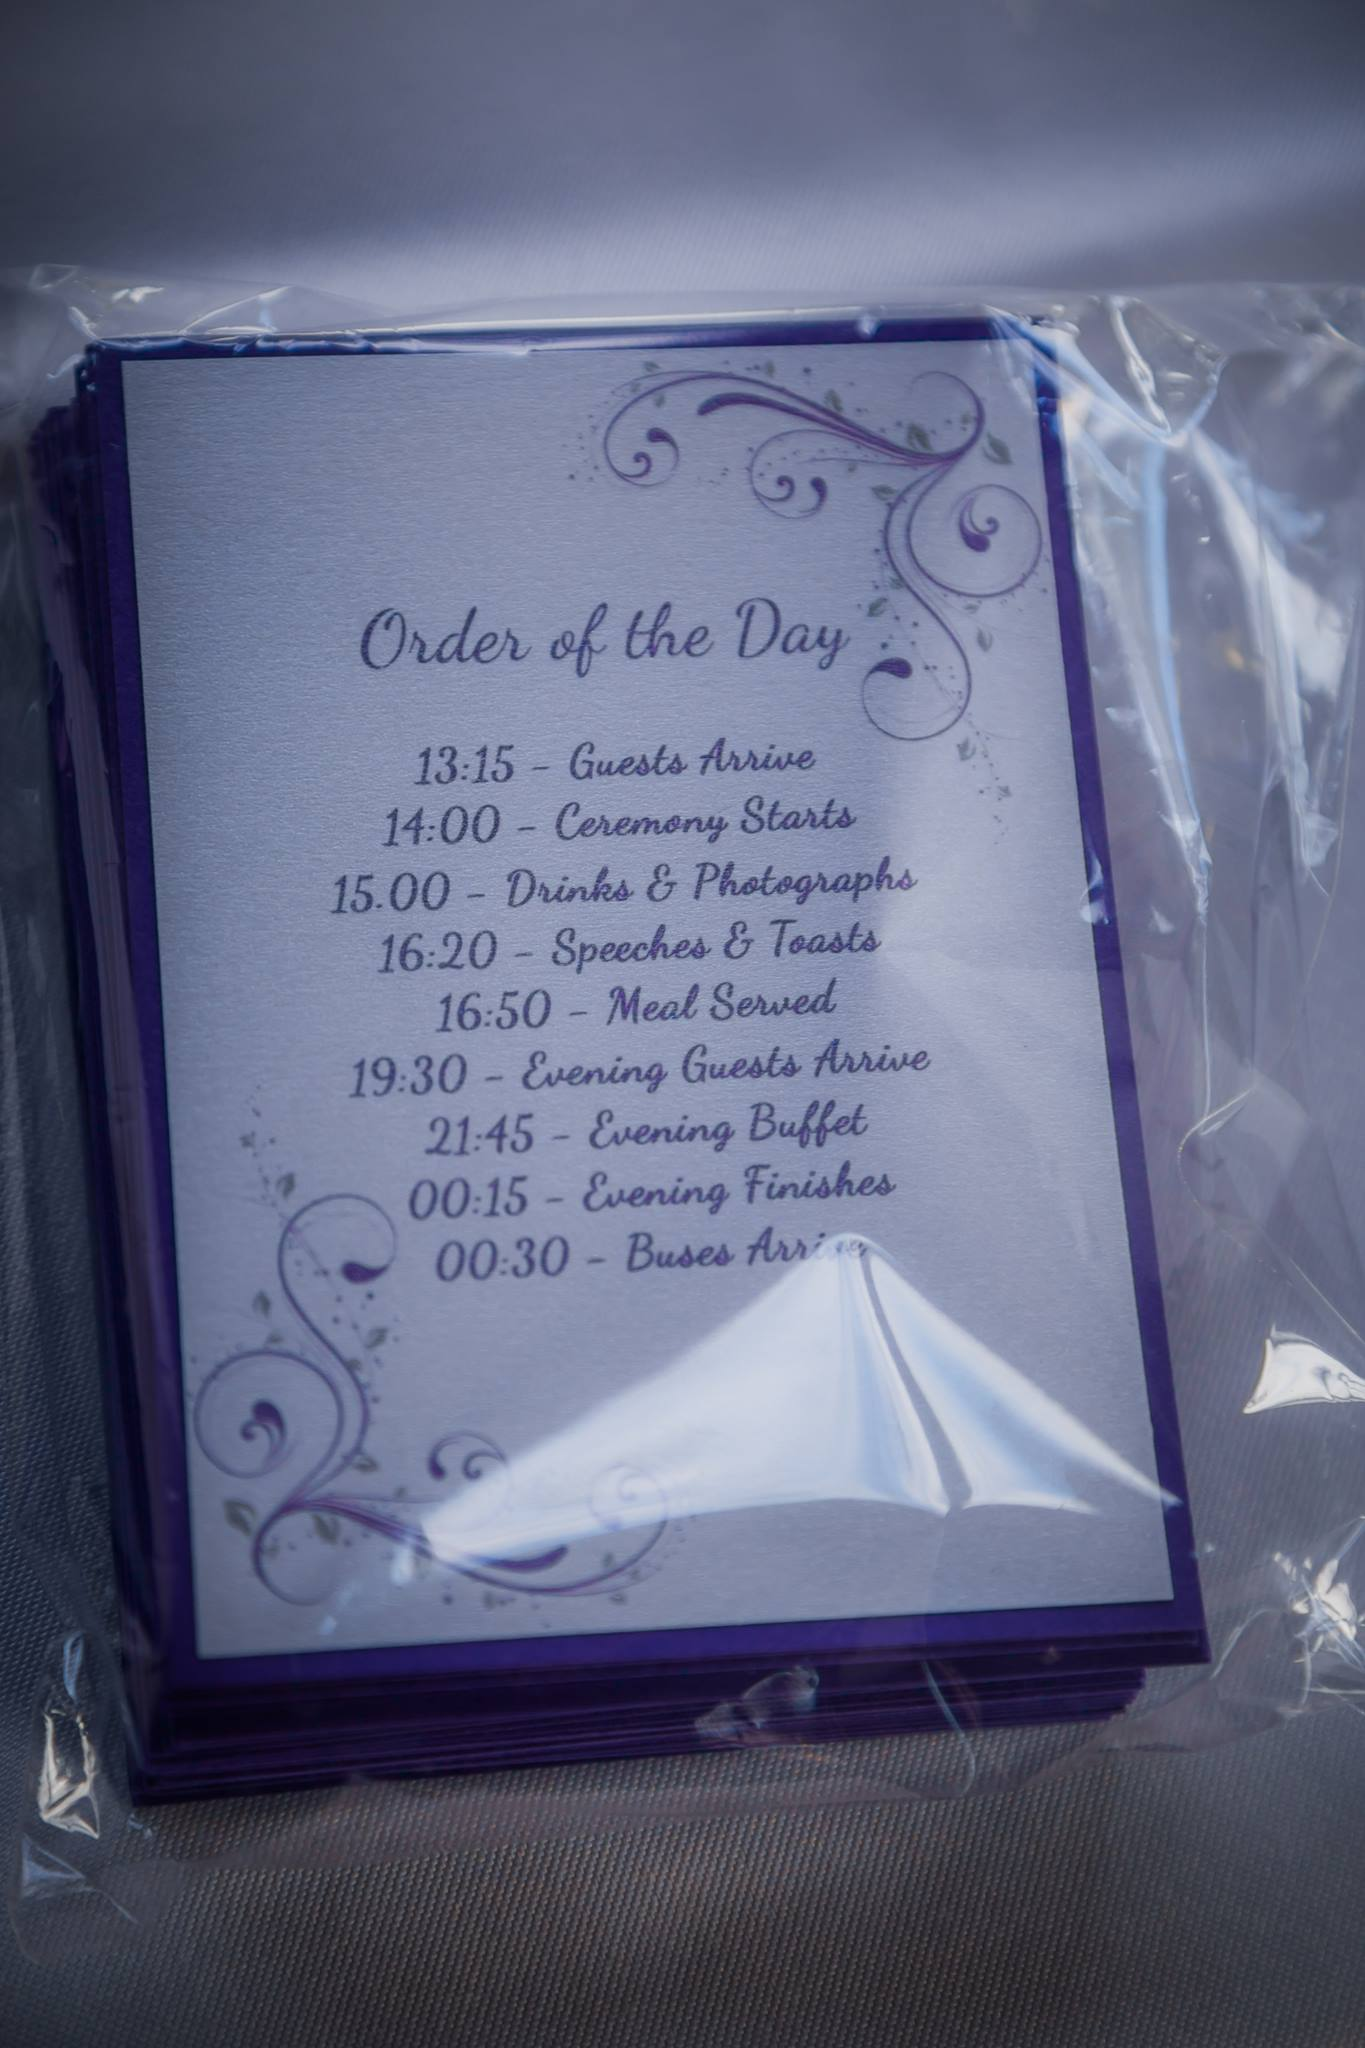 Order of the Day